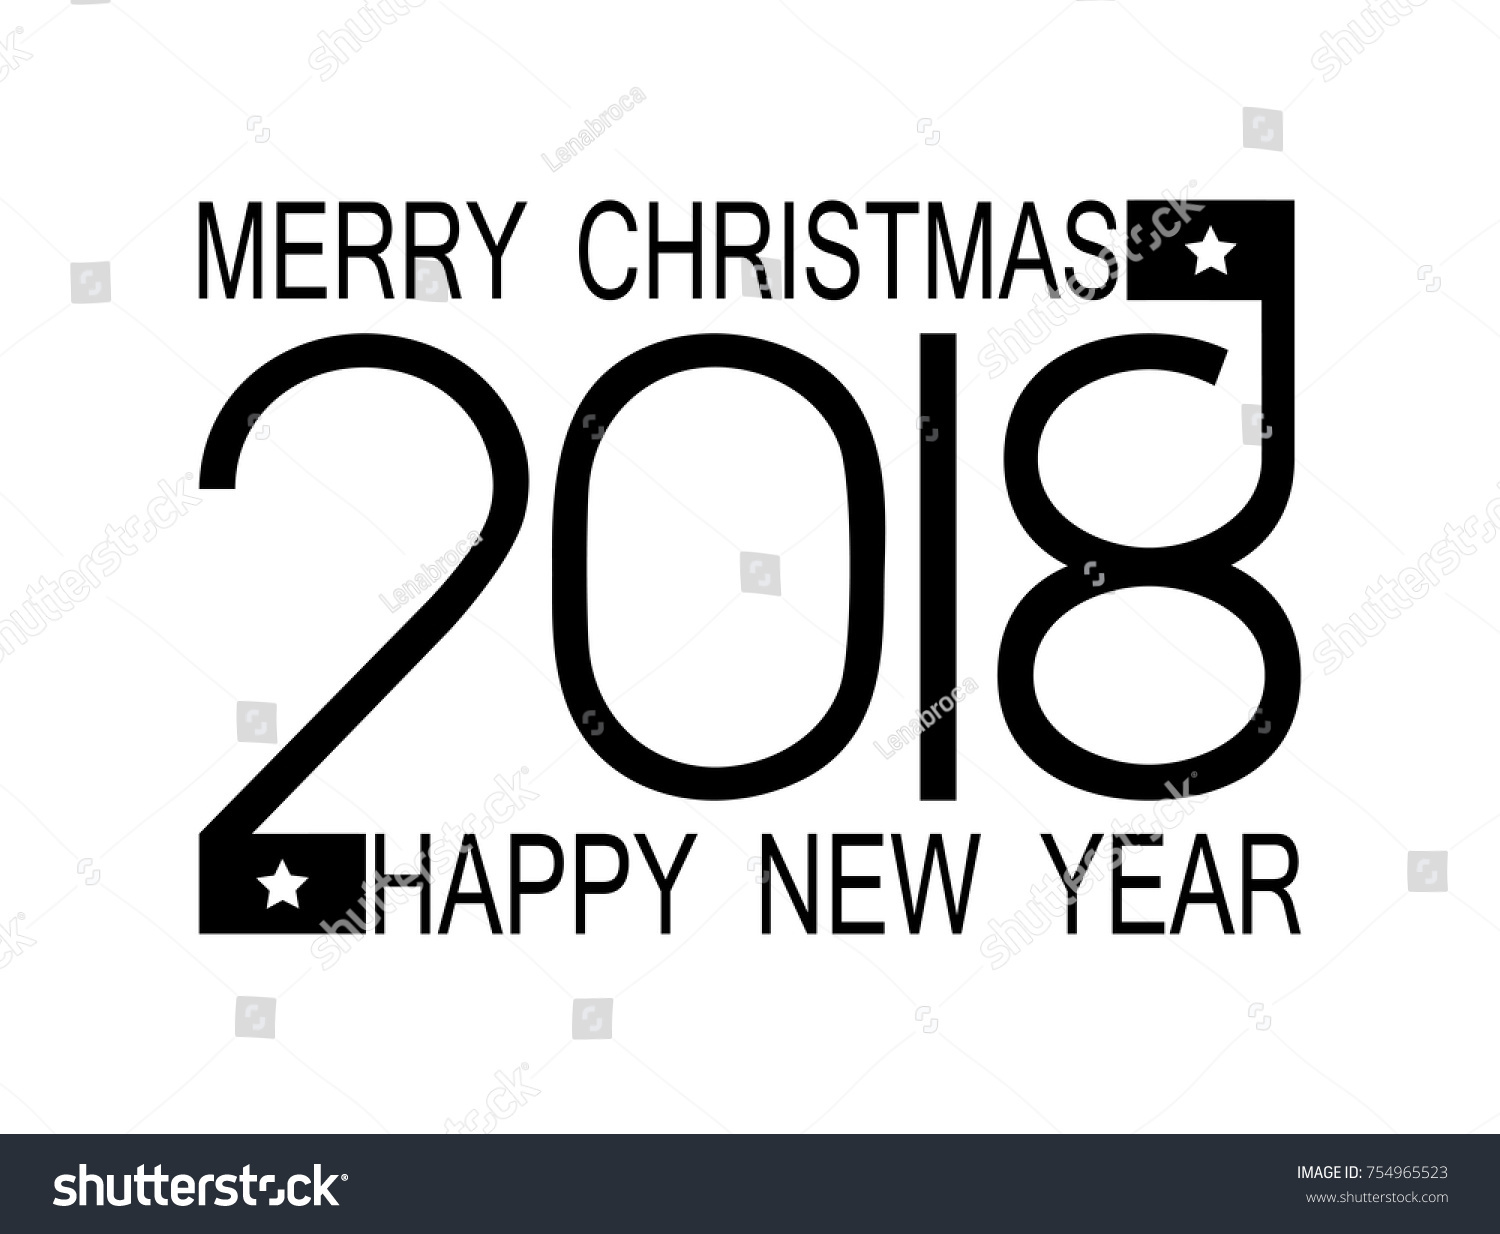 happy new year 2018 and merry christmas numbers 2018 on a white flat background